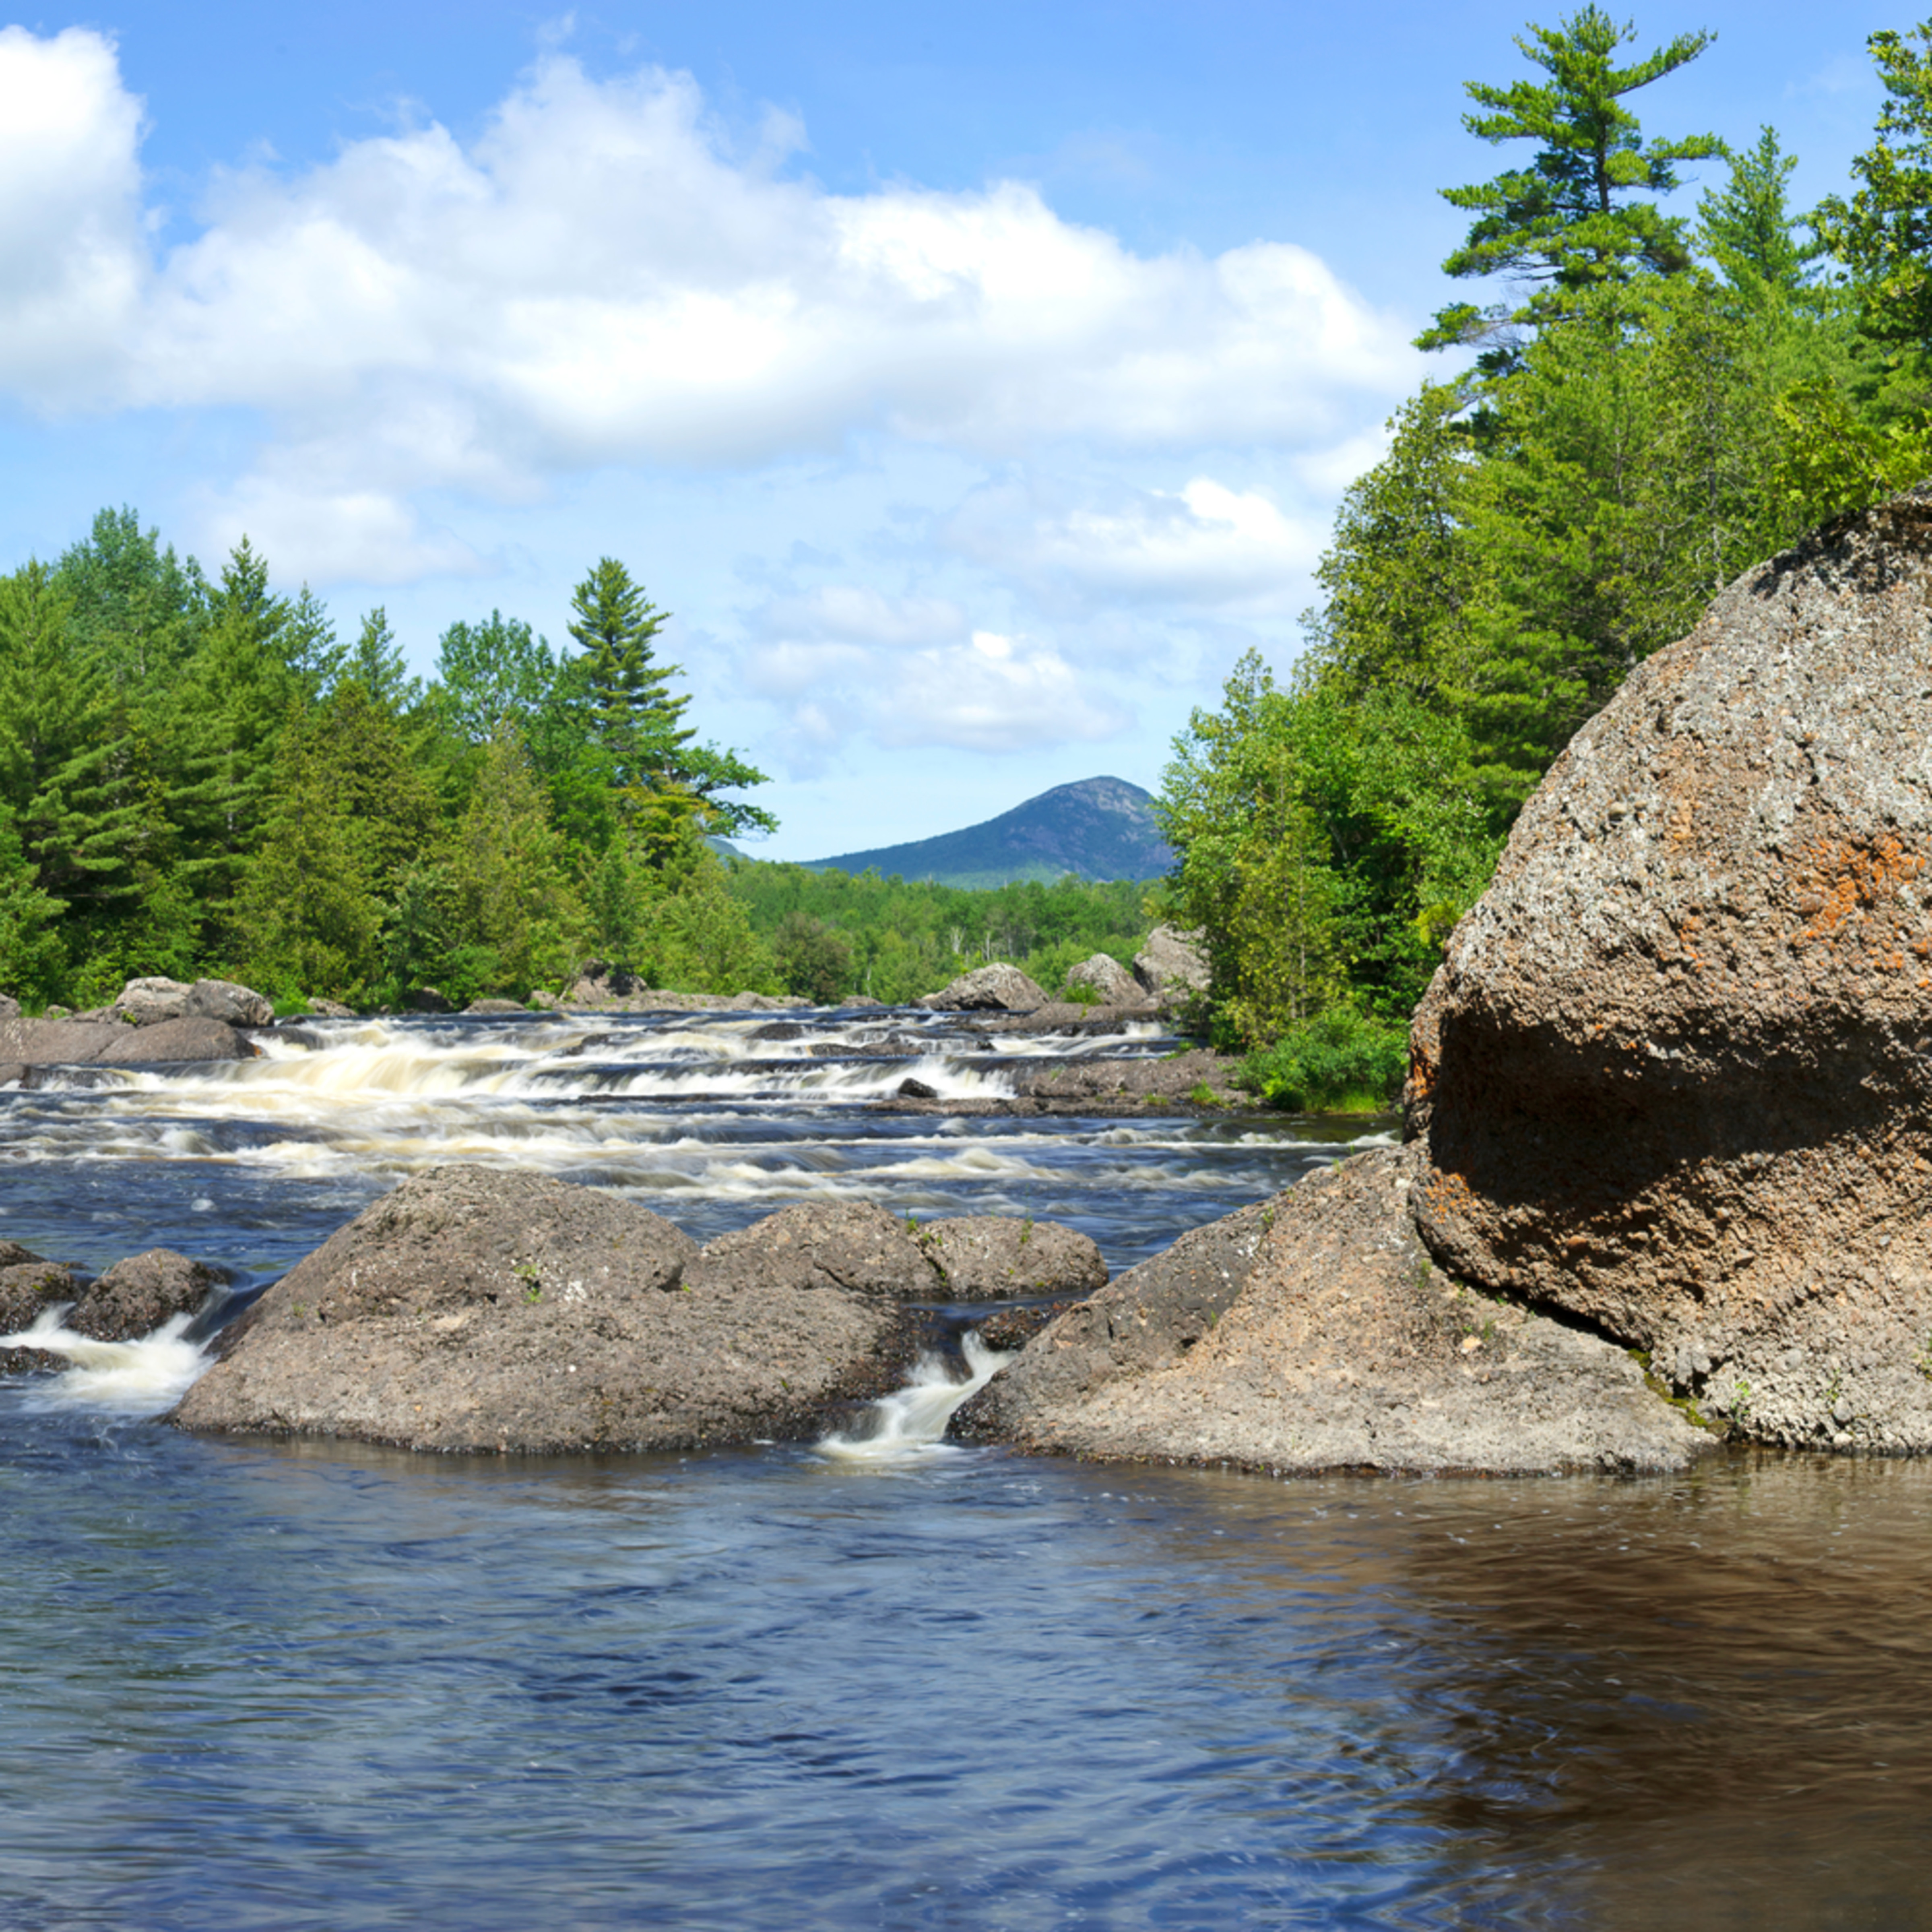 Haskell rock east branch penobscot river kwwnm svcwlc